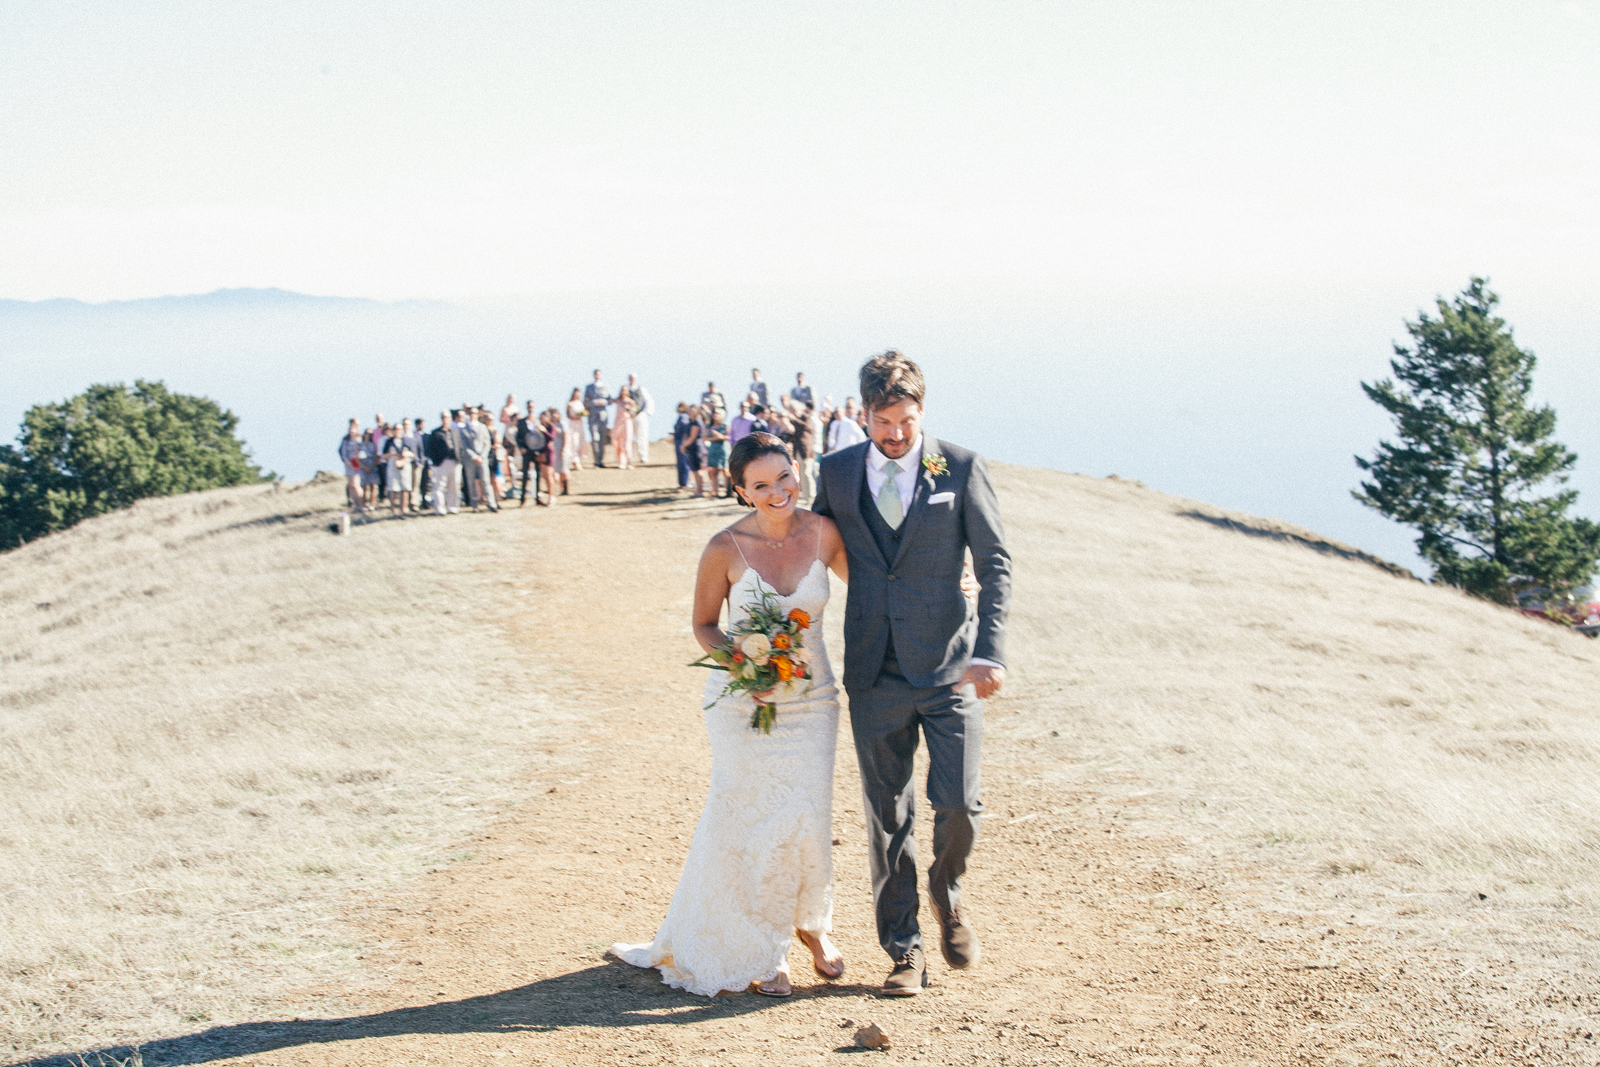 mt_tam_wedding_photography_marin_zac_katie_ebony_siovhan_bokeh_photography_18.jpg